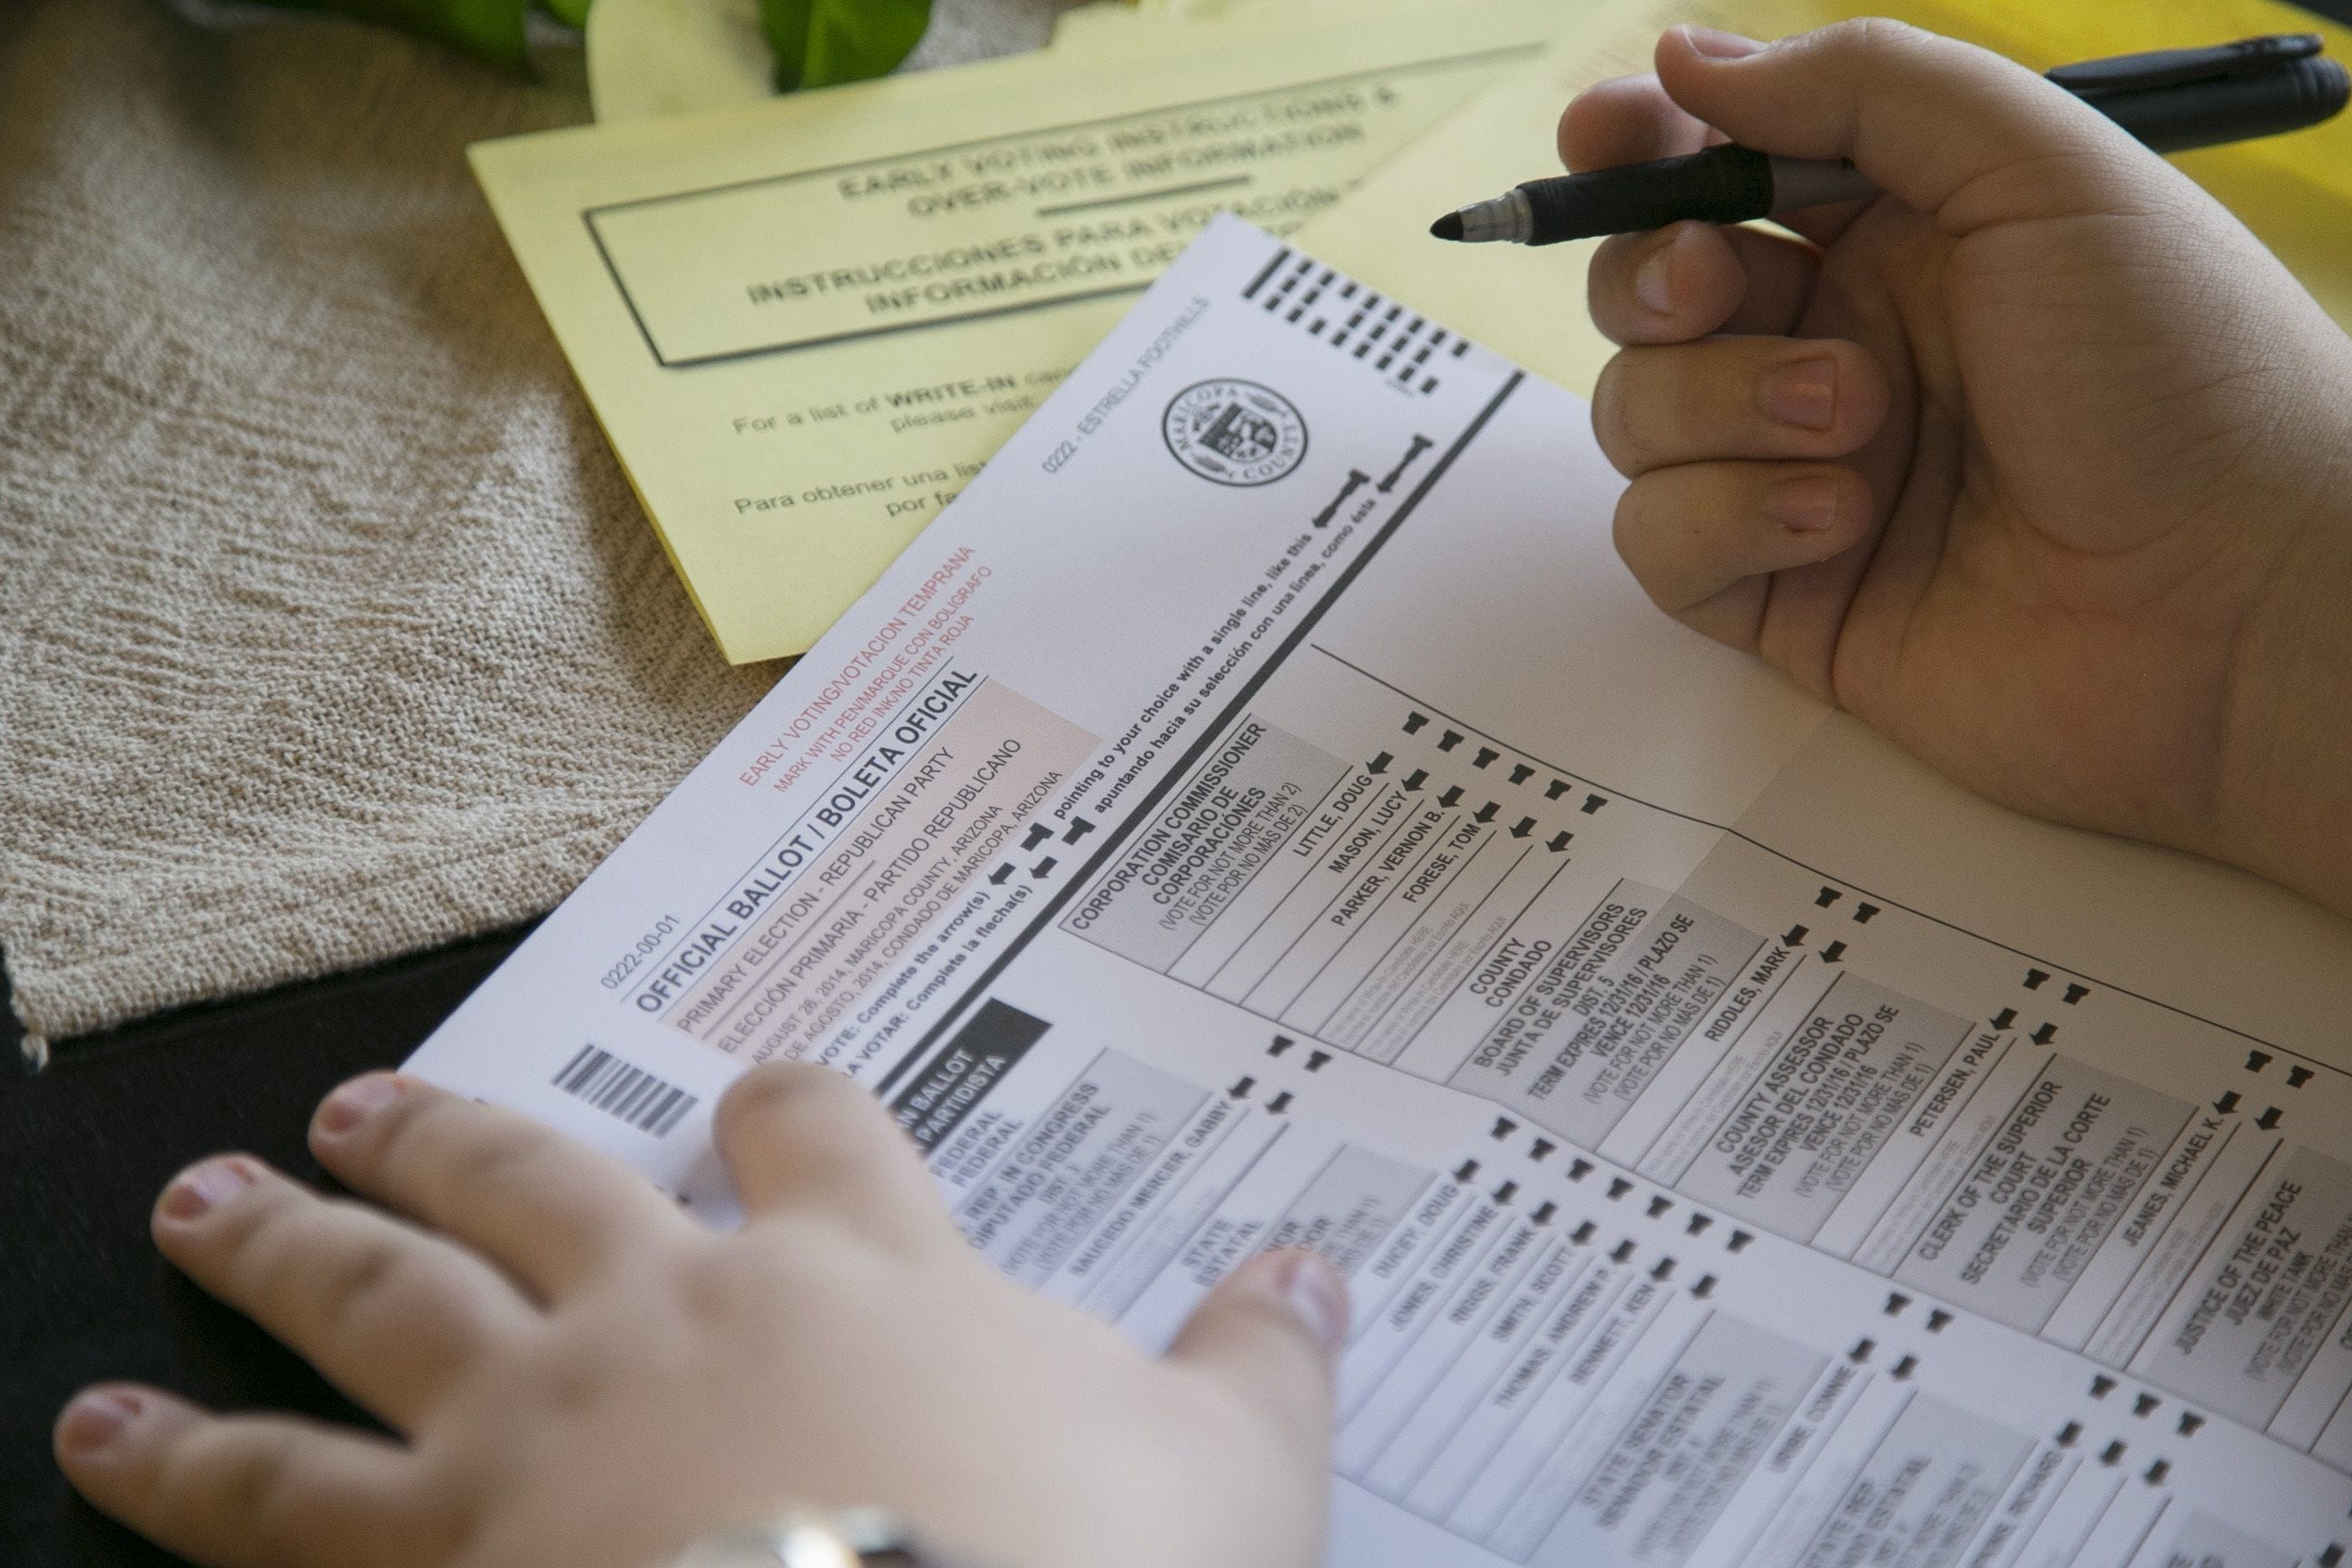 Judge rejects request to send mailers warning voters their registration may be out of date | AZ Central